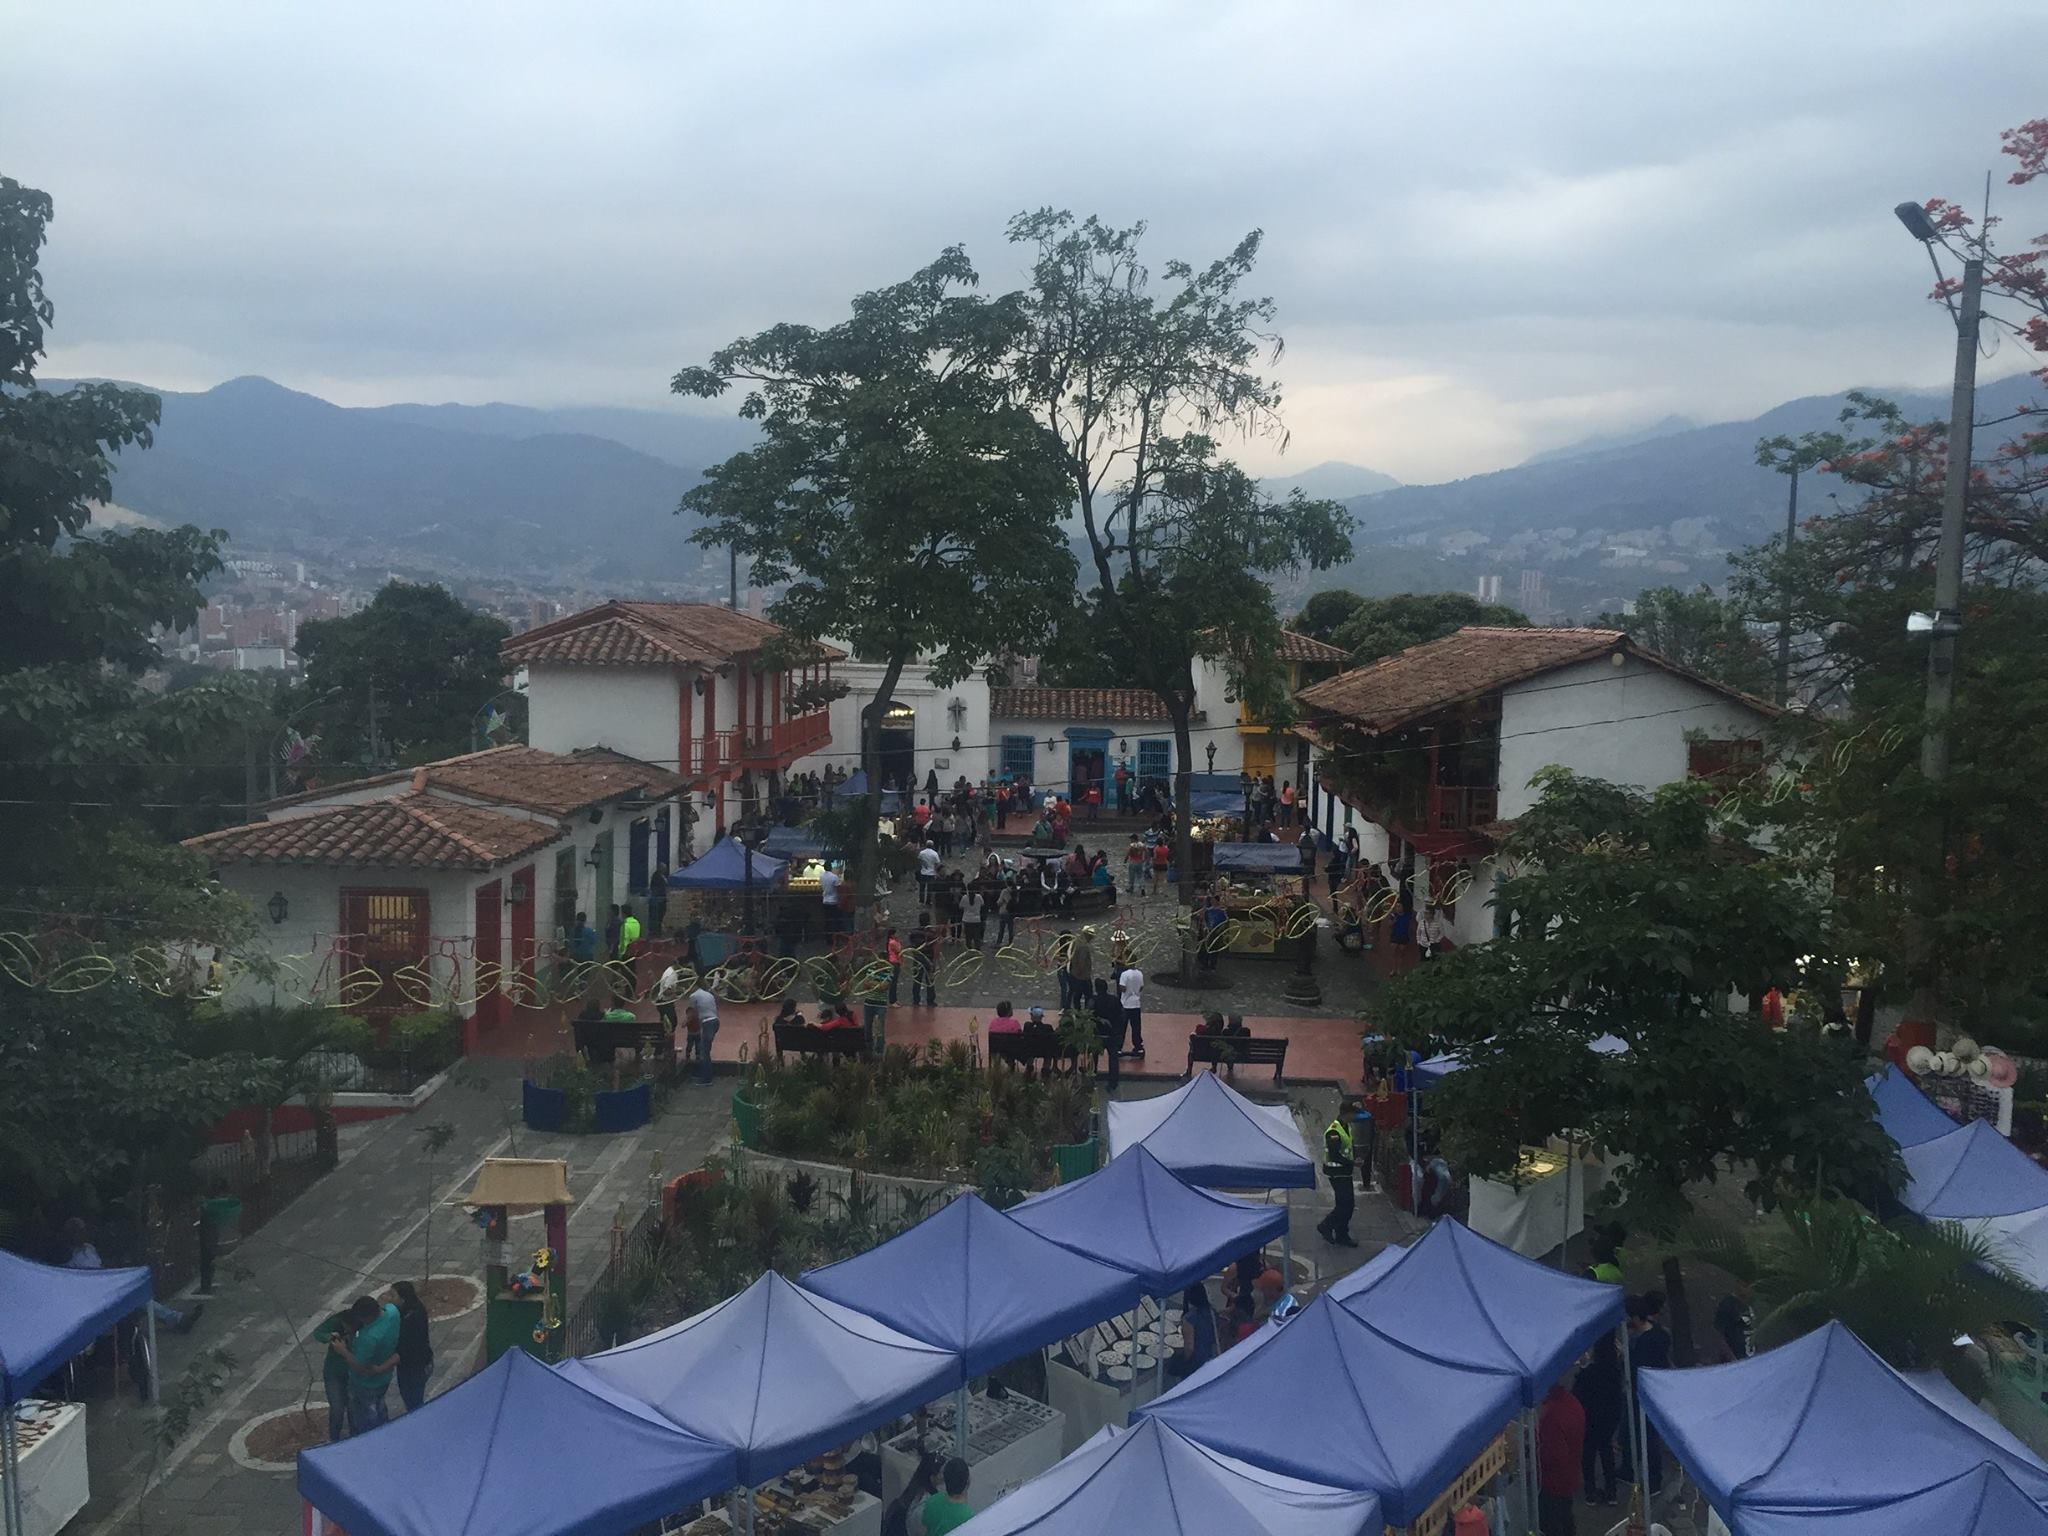 Pueblito Paisa from above.